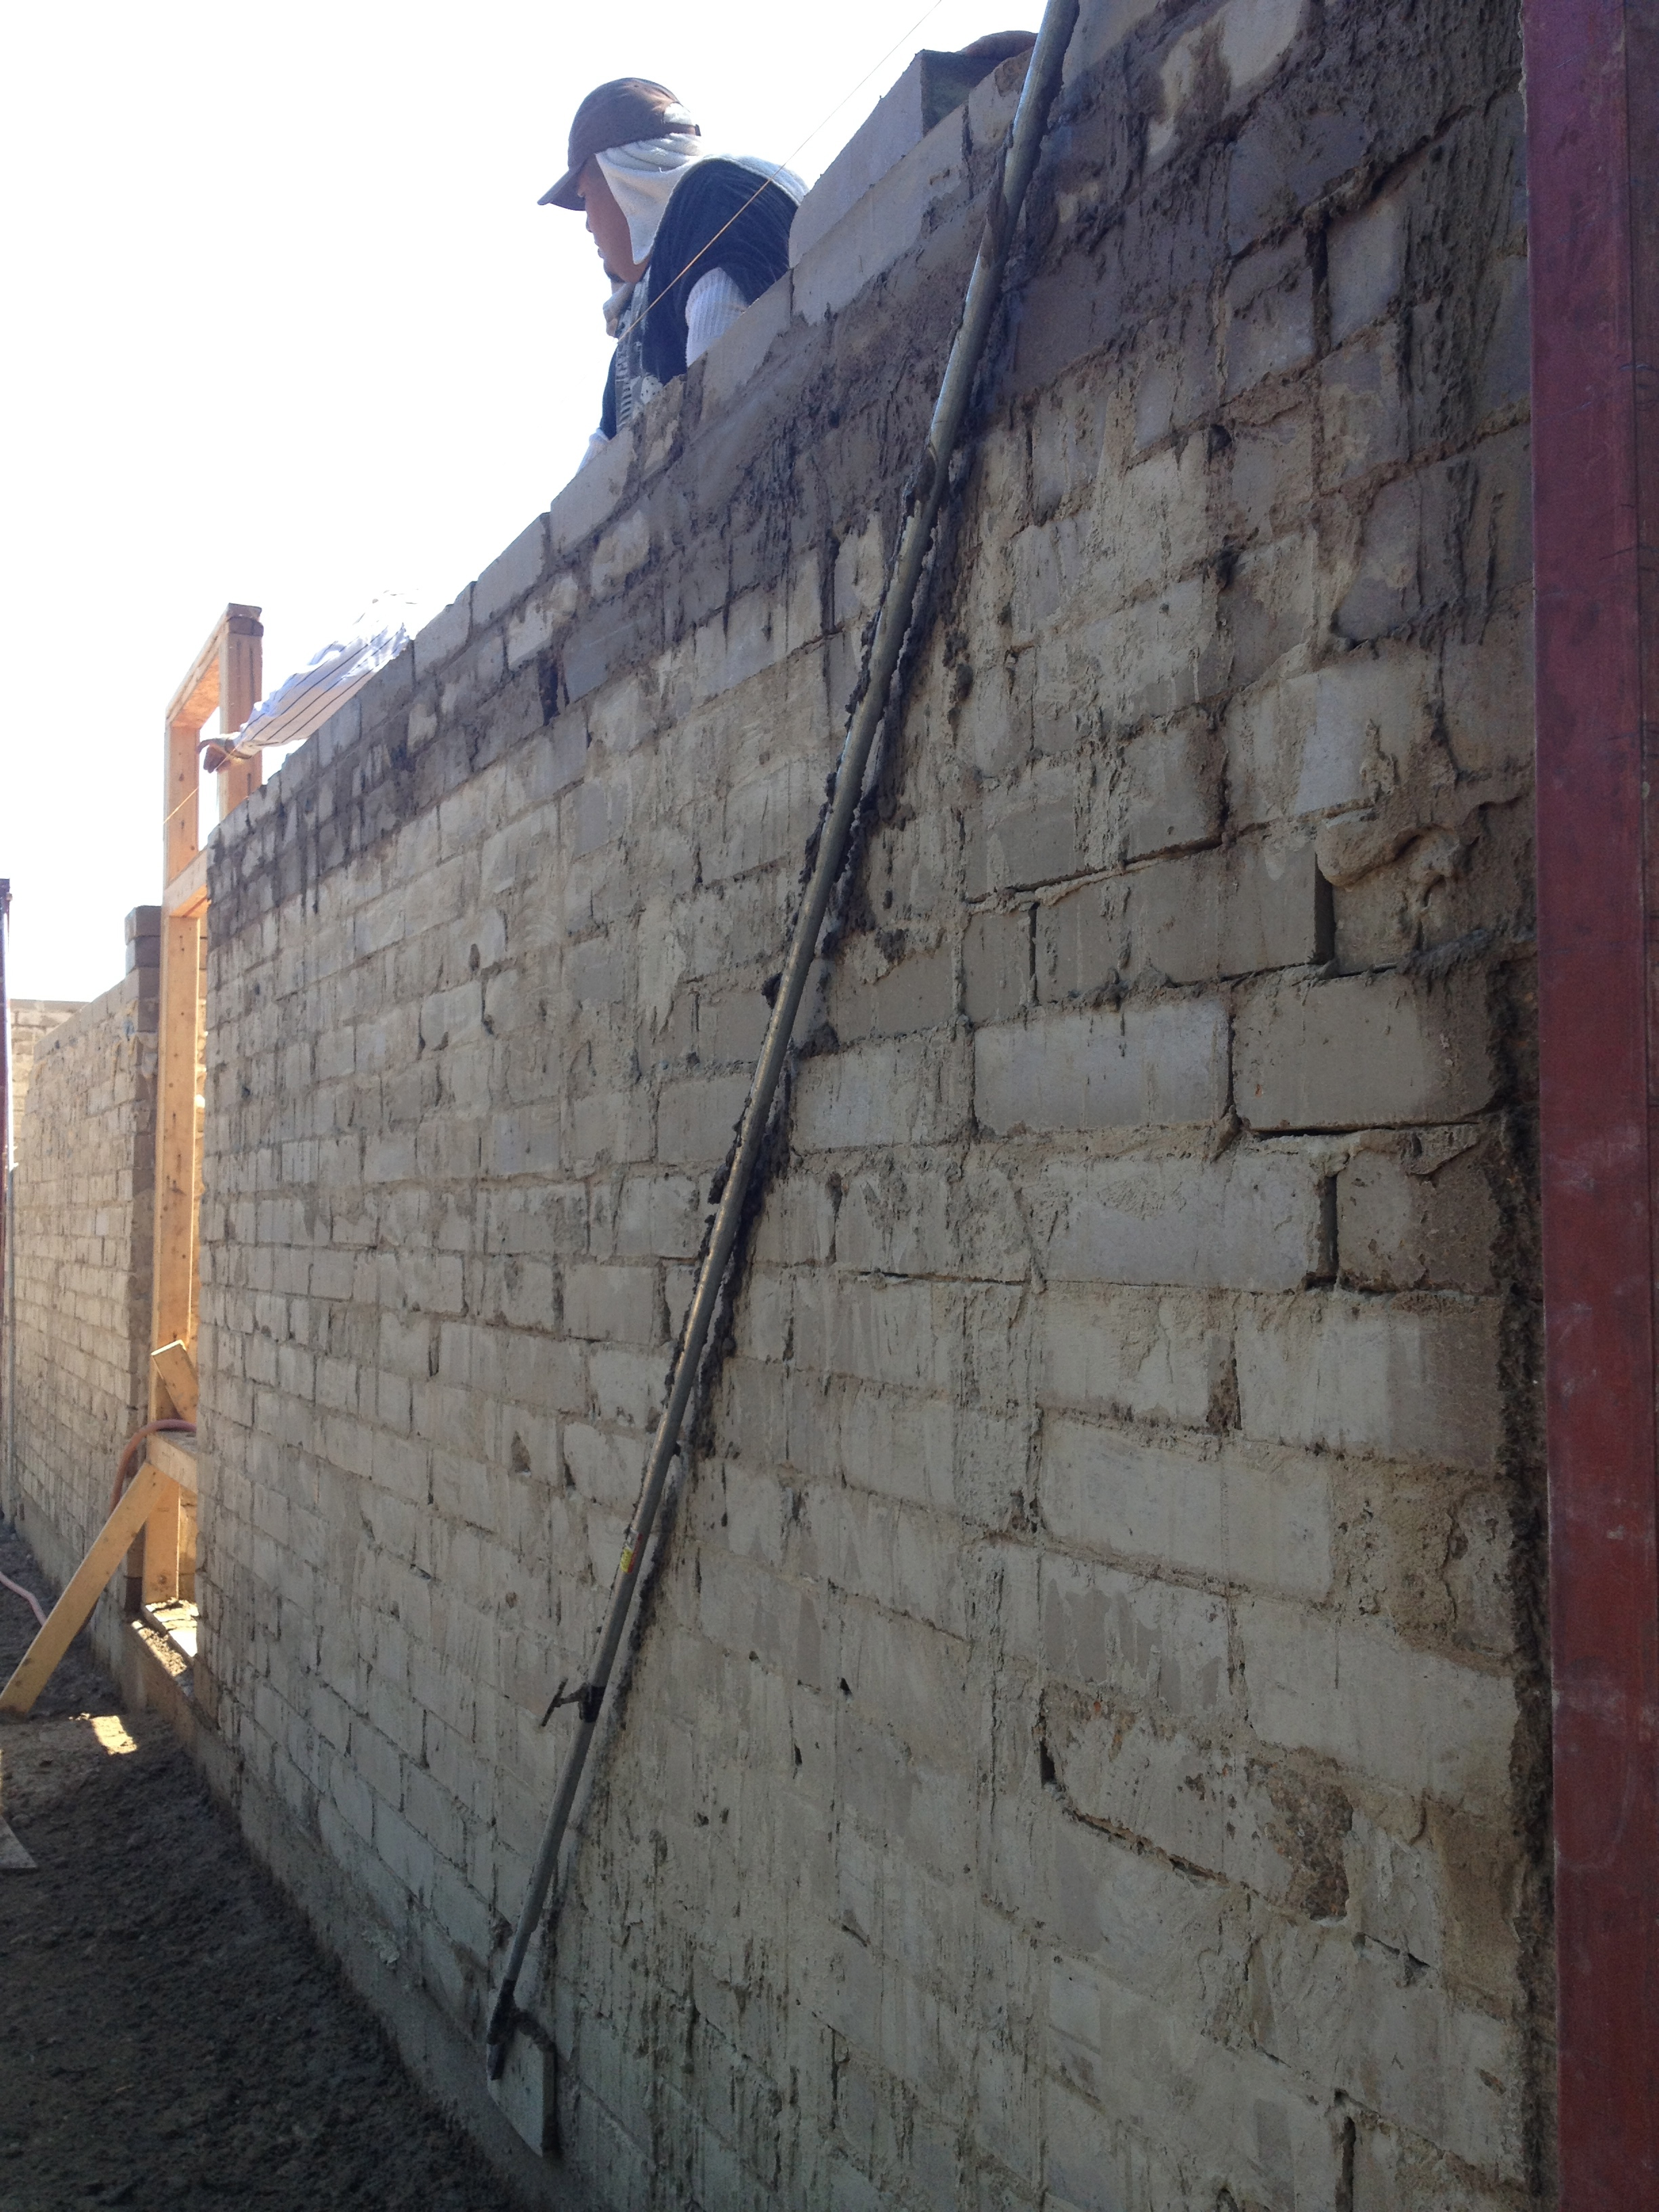 The final building nears completion of the walls